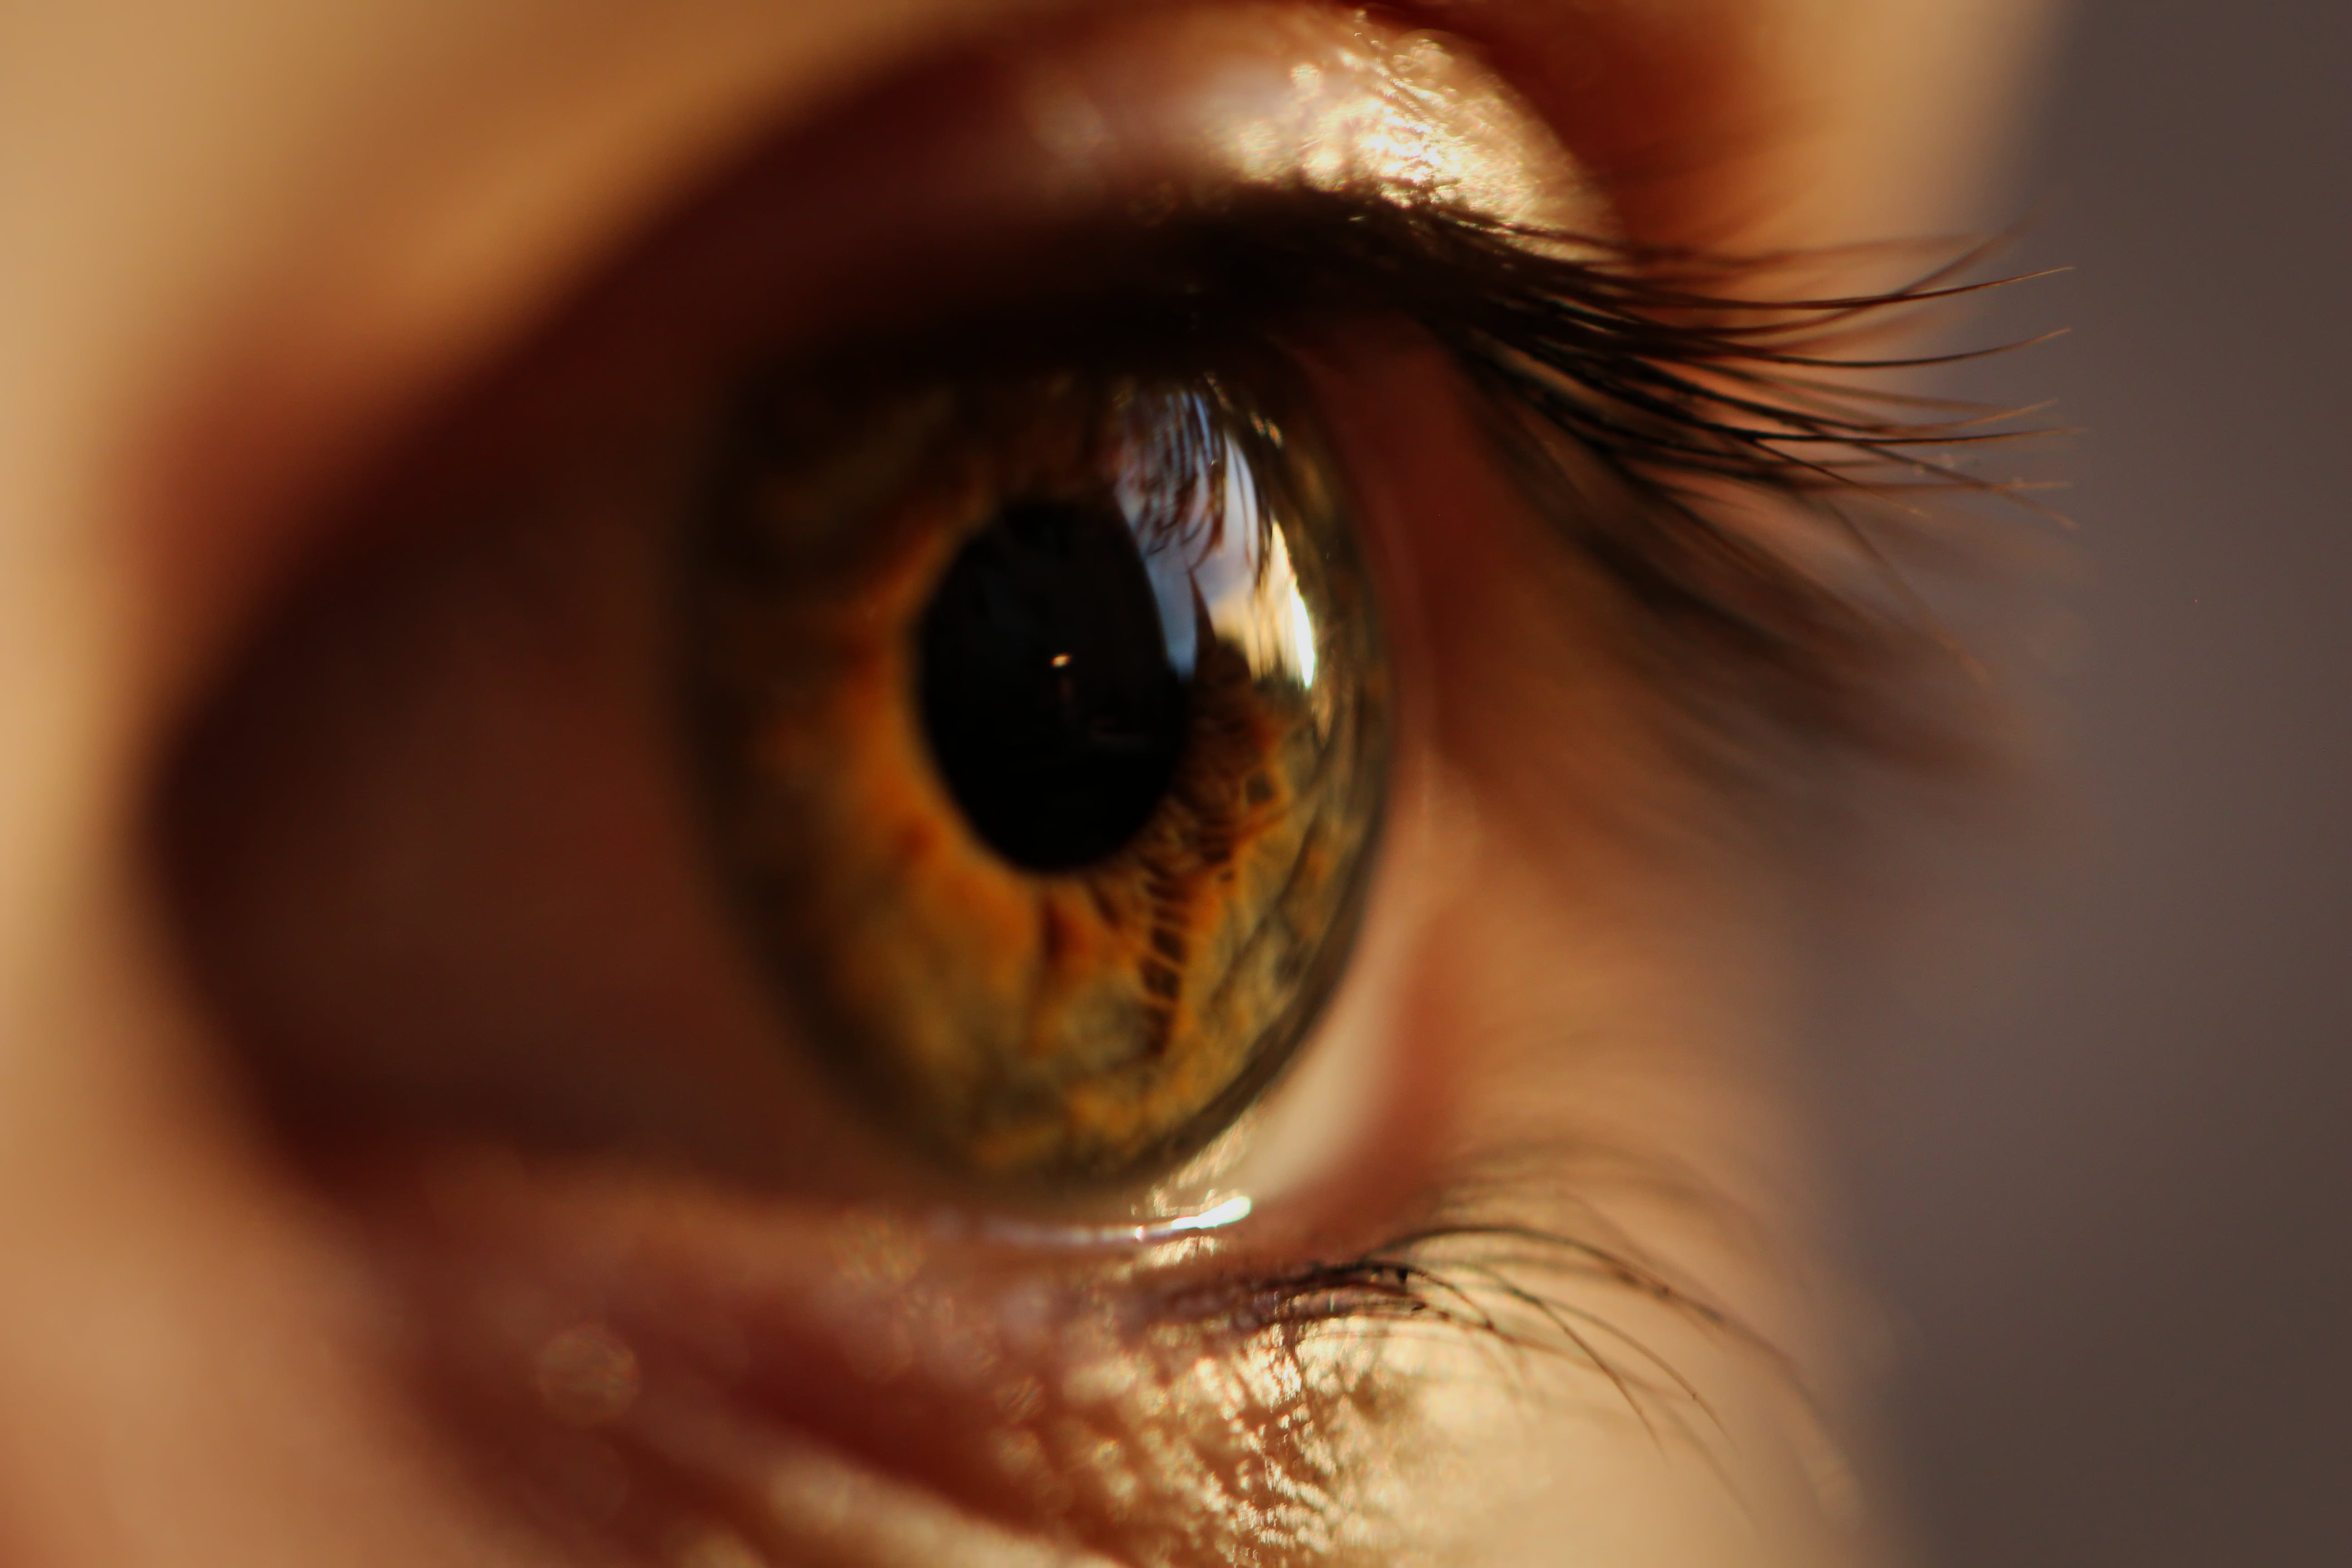 Close-up Photography Of Person's Eye